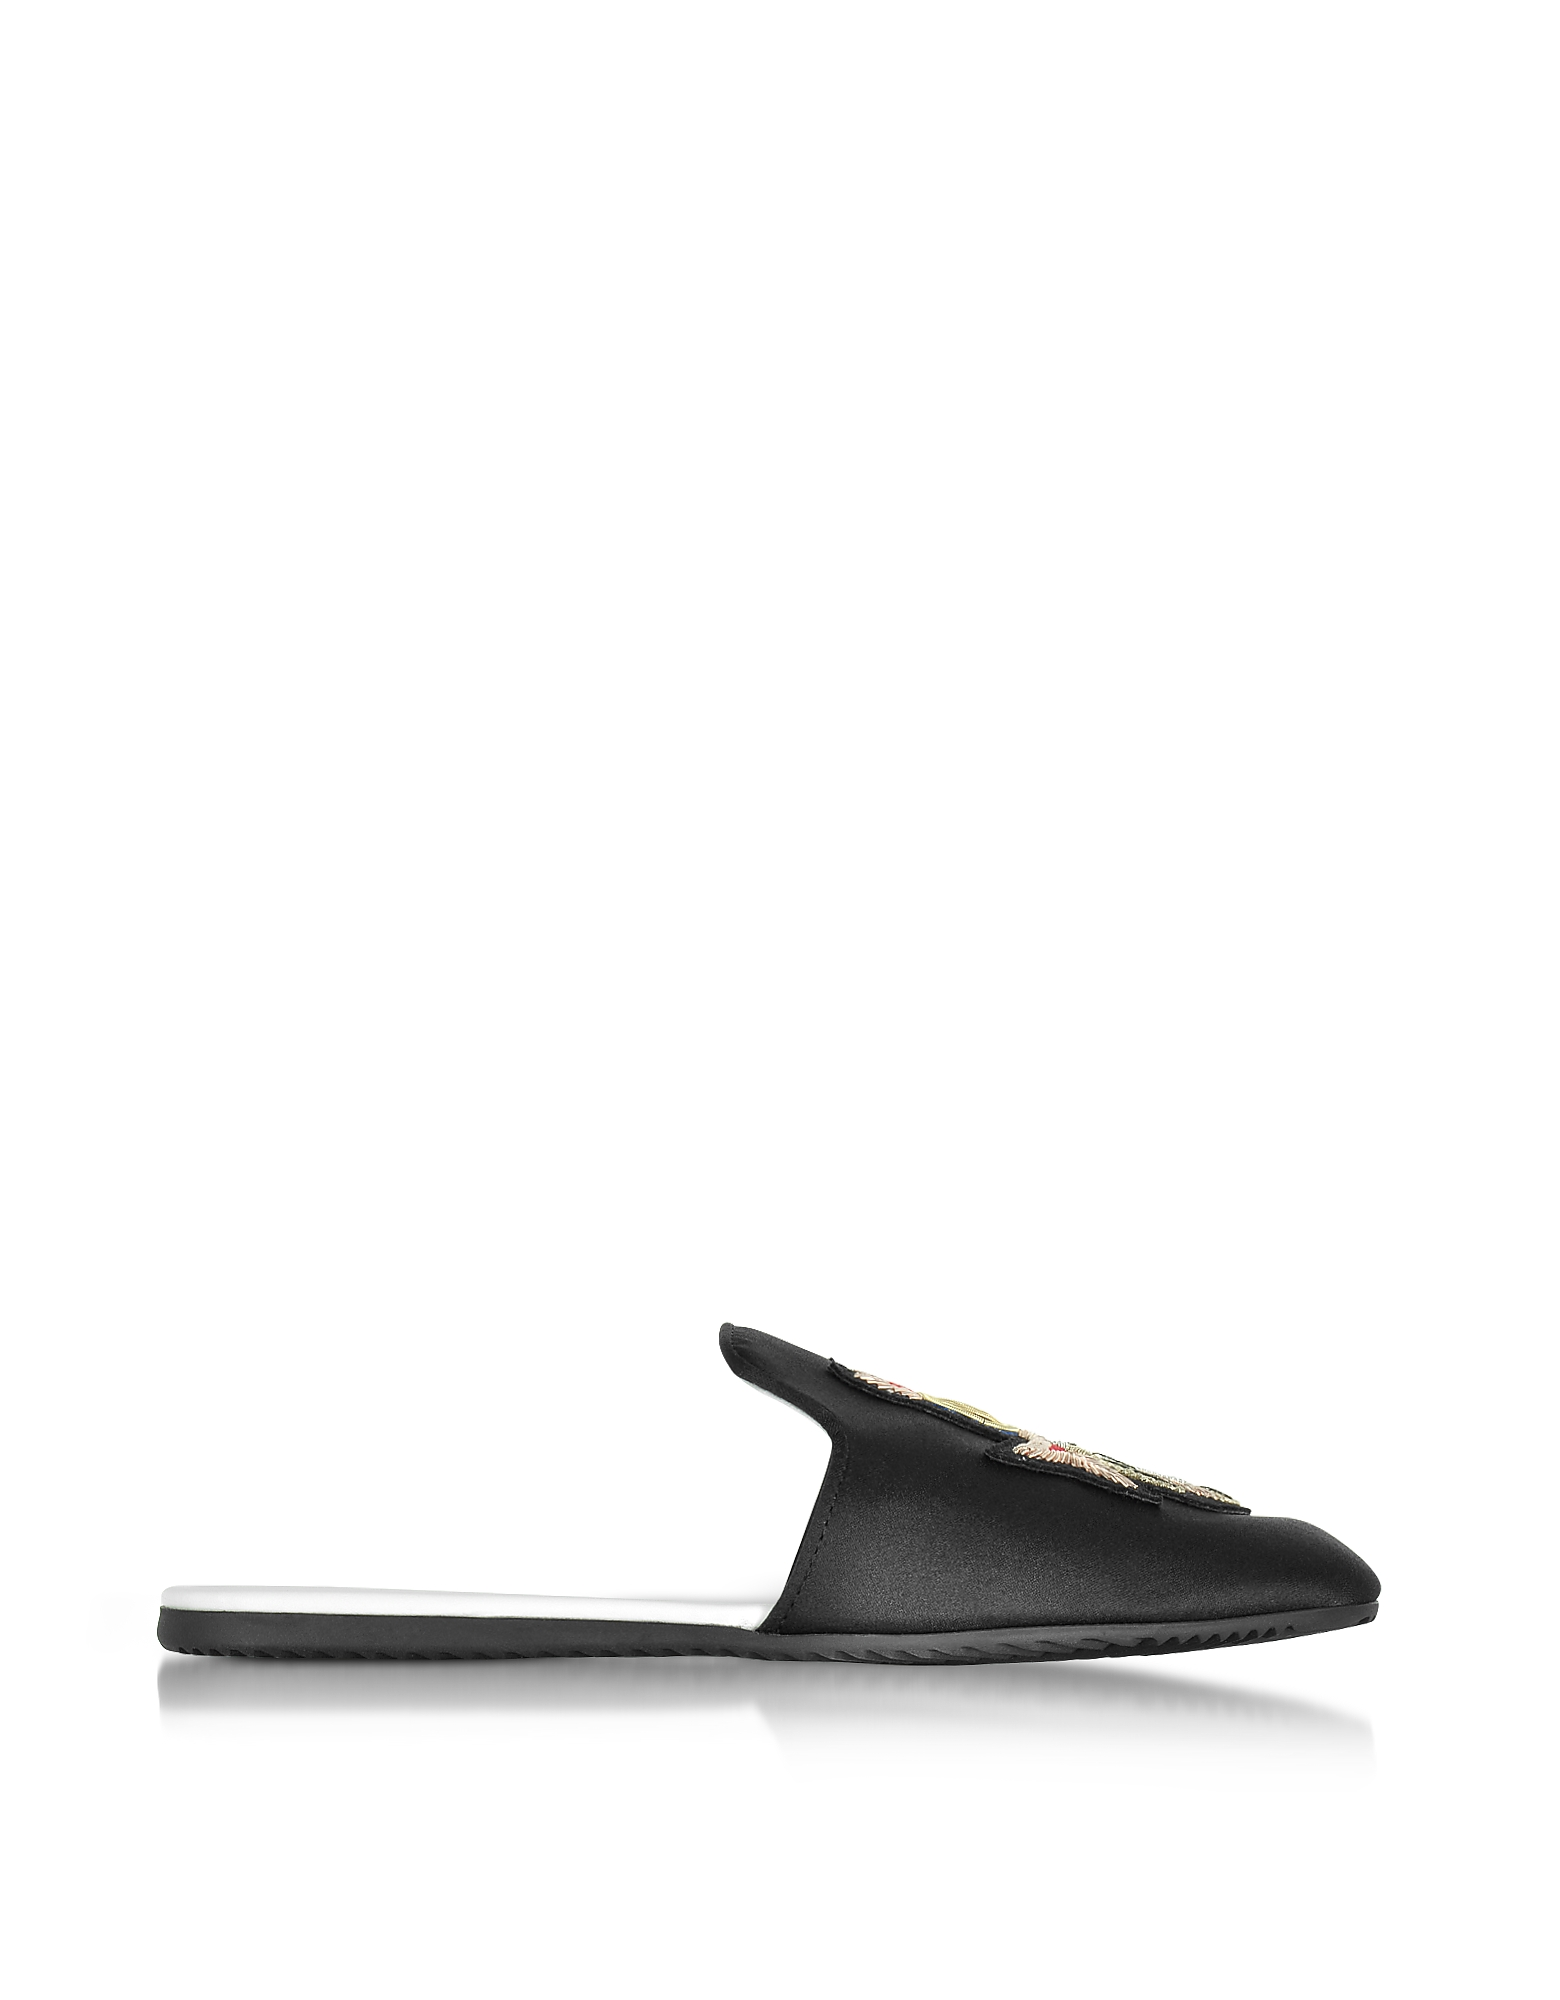 Joshua Sanders Shoes, Black Crest Satin Flat Mule